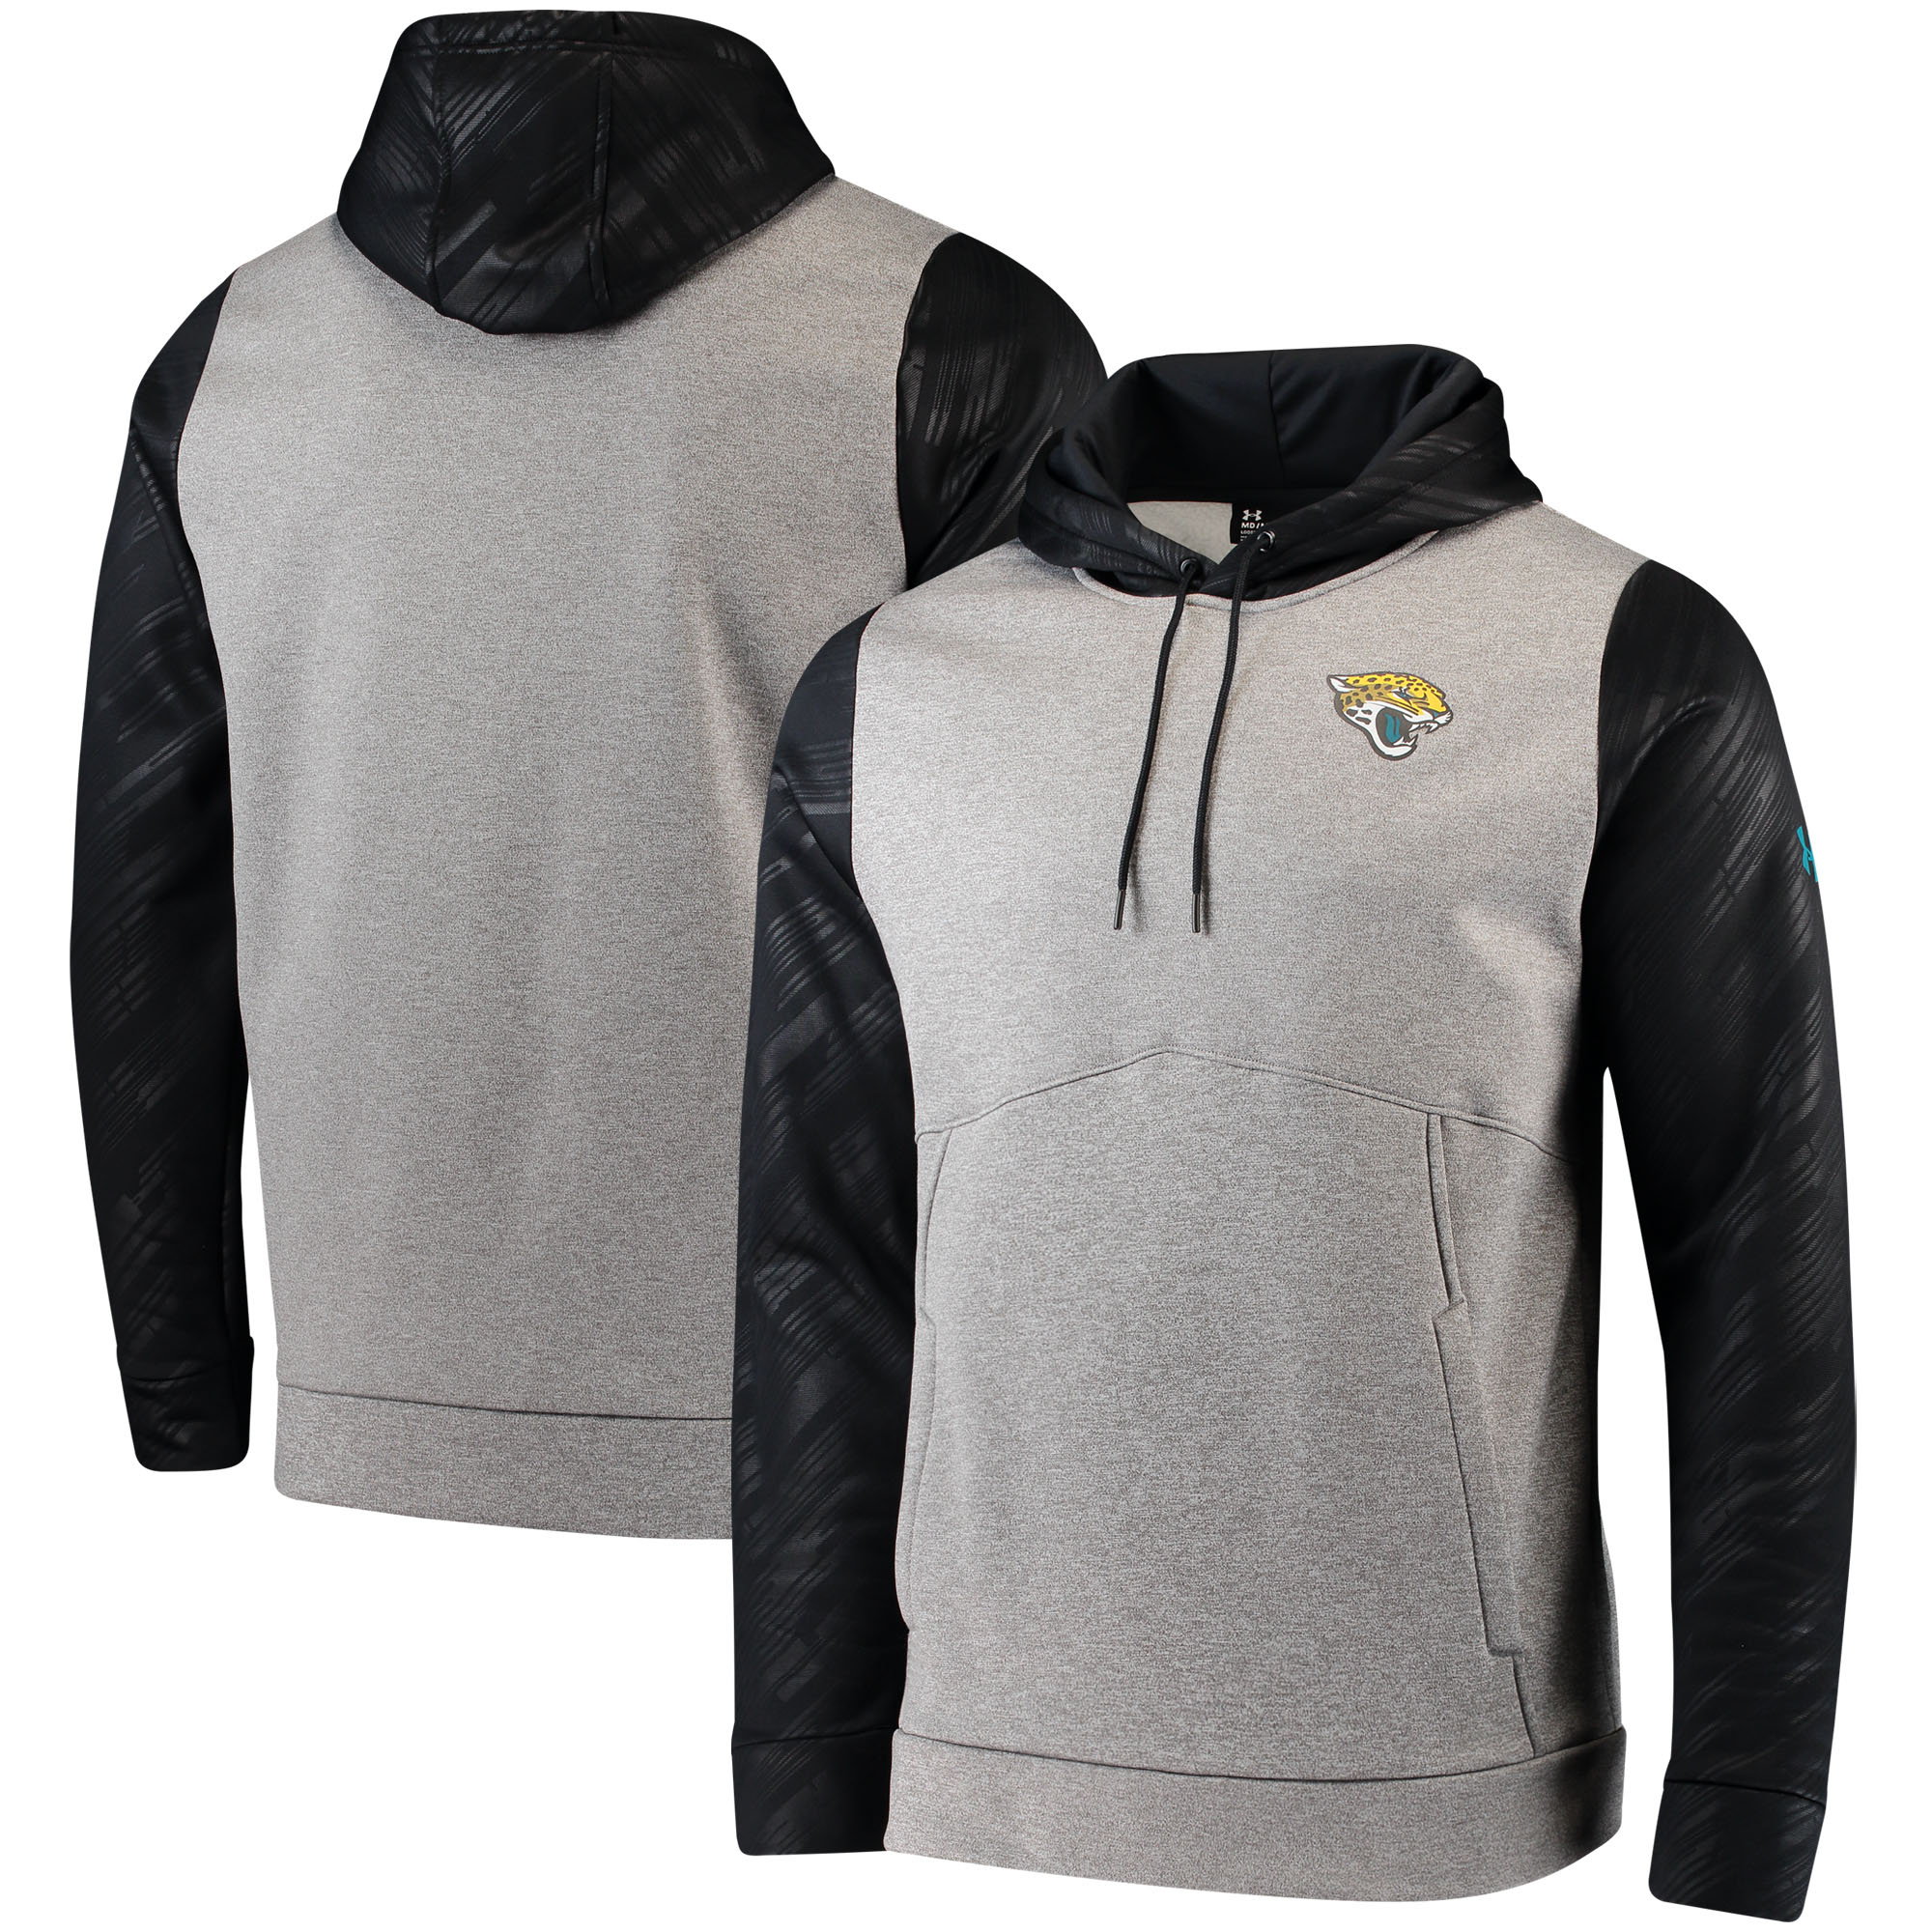 Jacksonville Jaguars Under Armour Combine Authentic Novelty Pullover Hoodie - Gray/Black